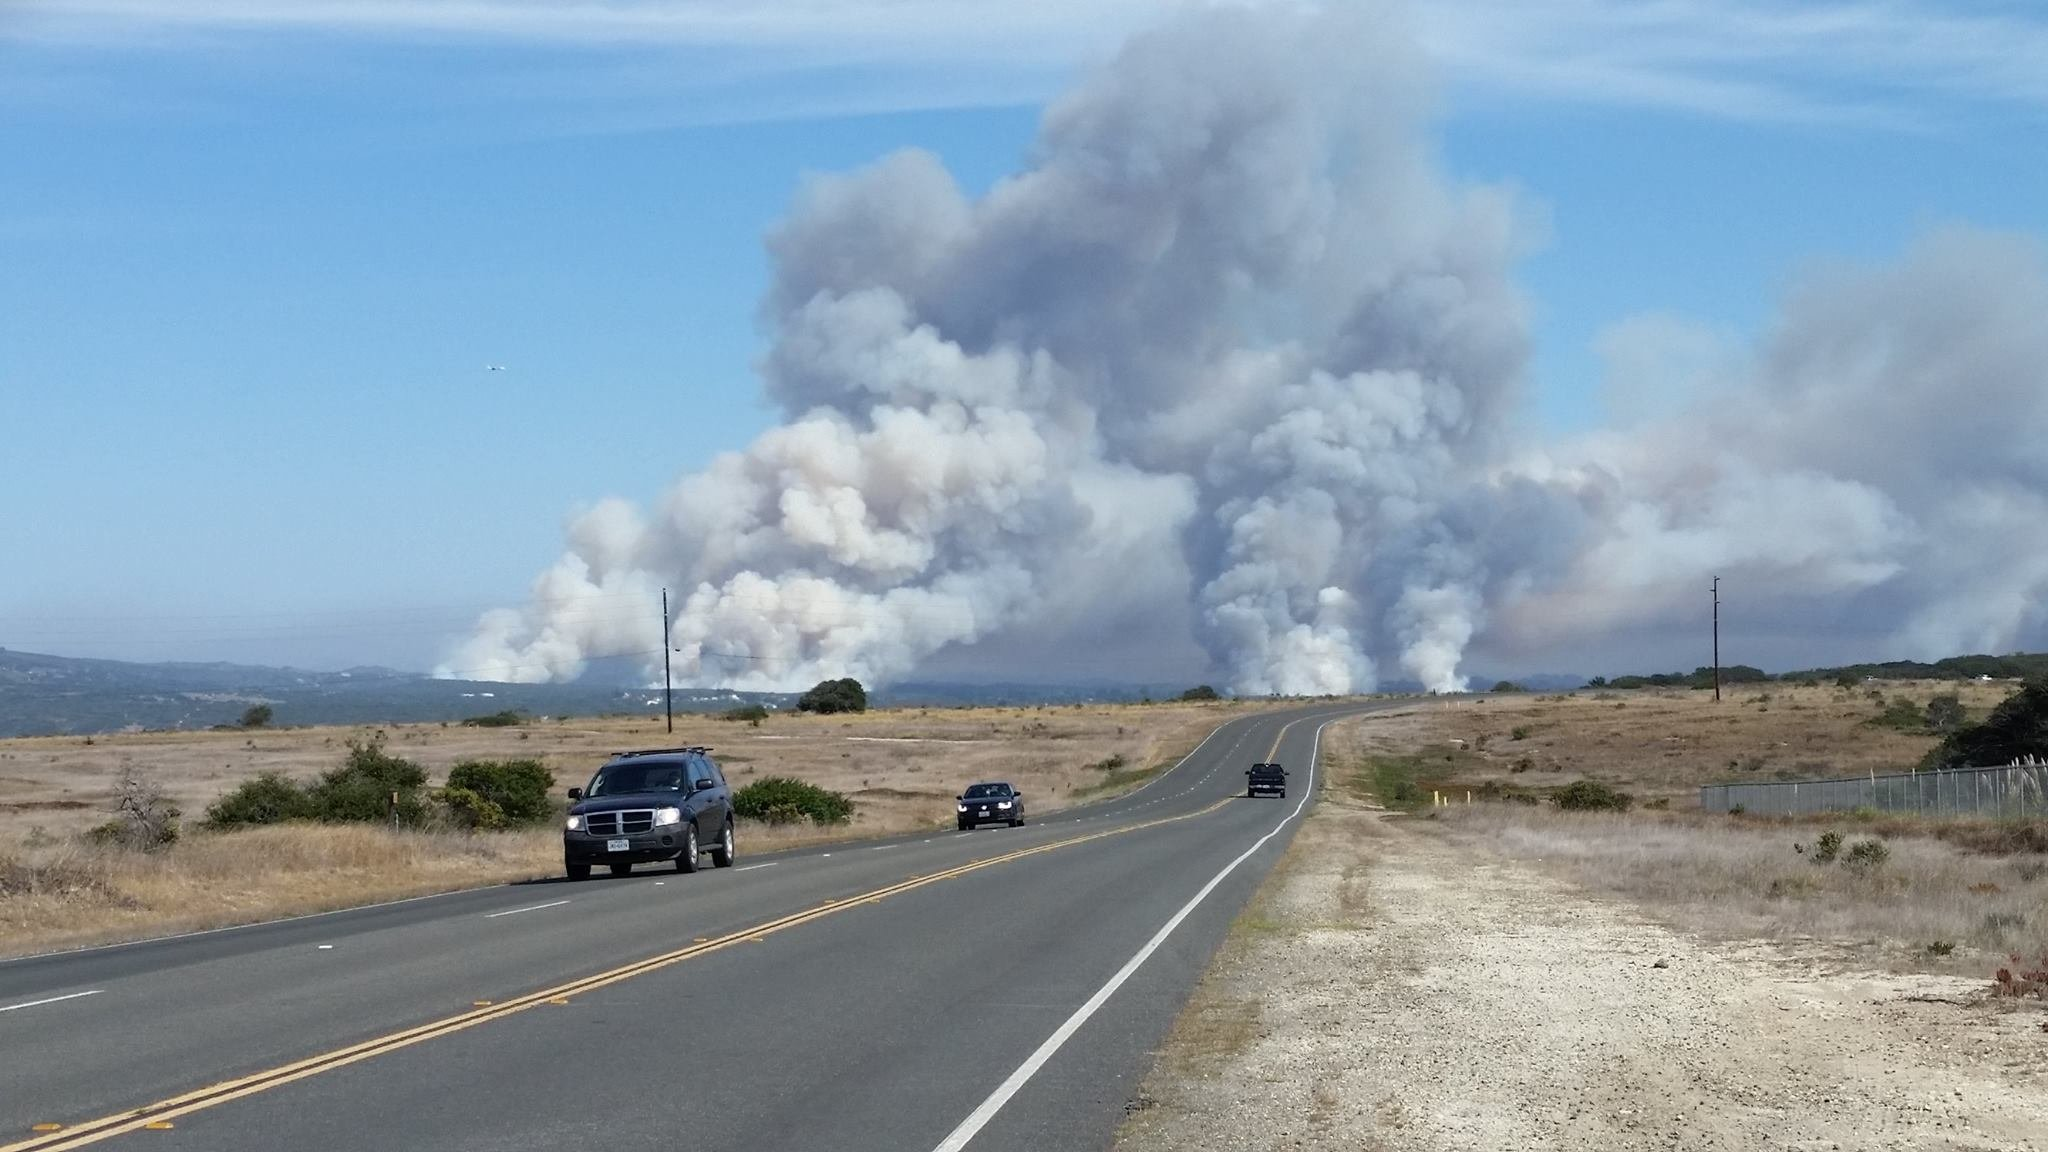 Rucker fire roars through Lompoc, burns hundreds of acres